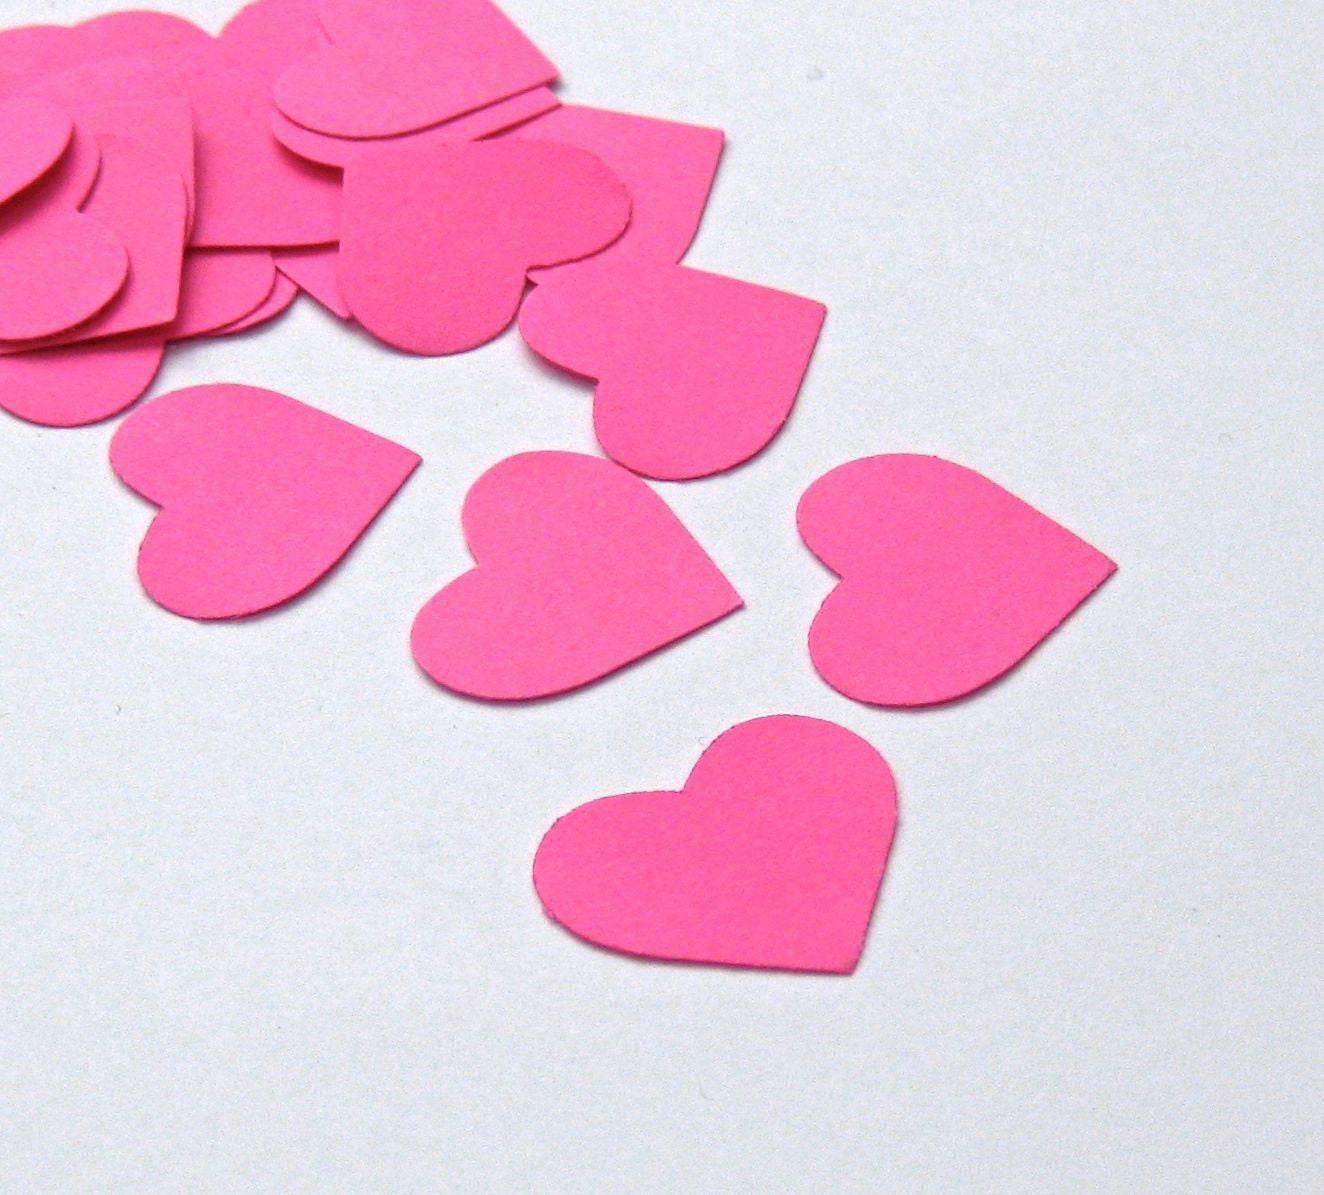 Neon Pink Love Hearts One Inch Card Stock by KnockOutPunches